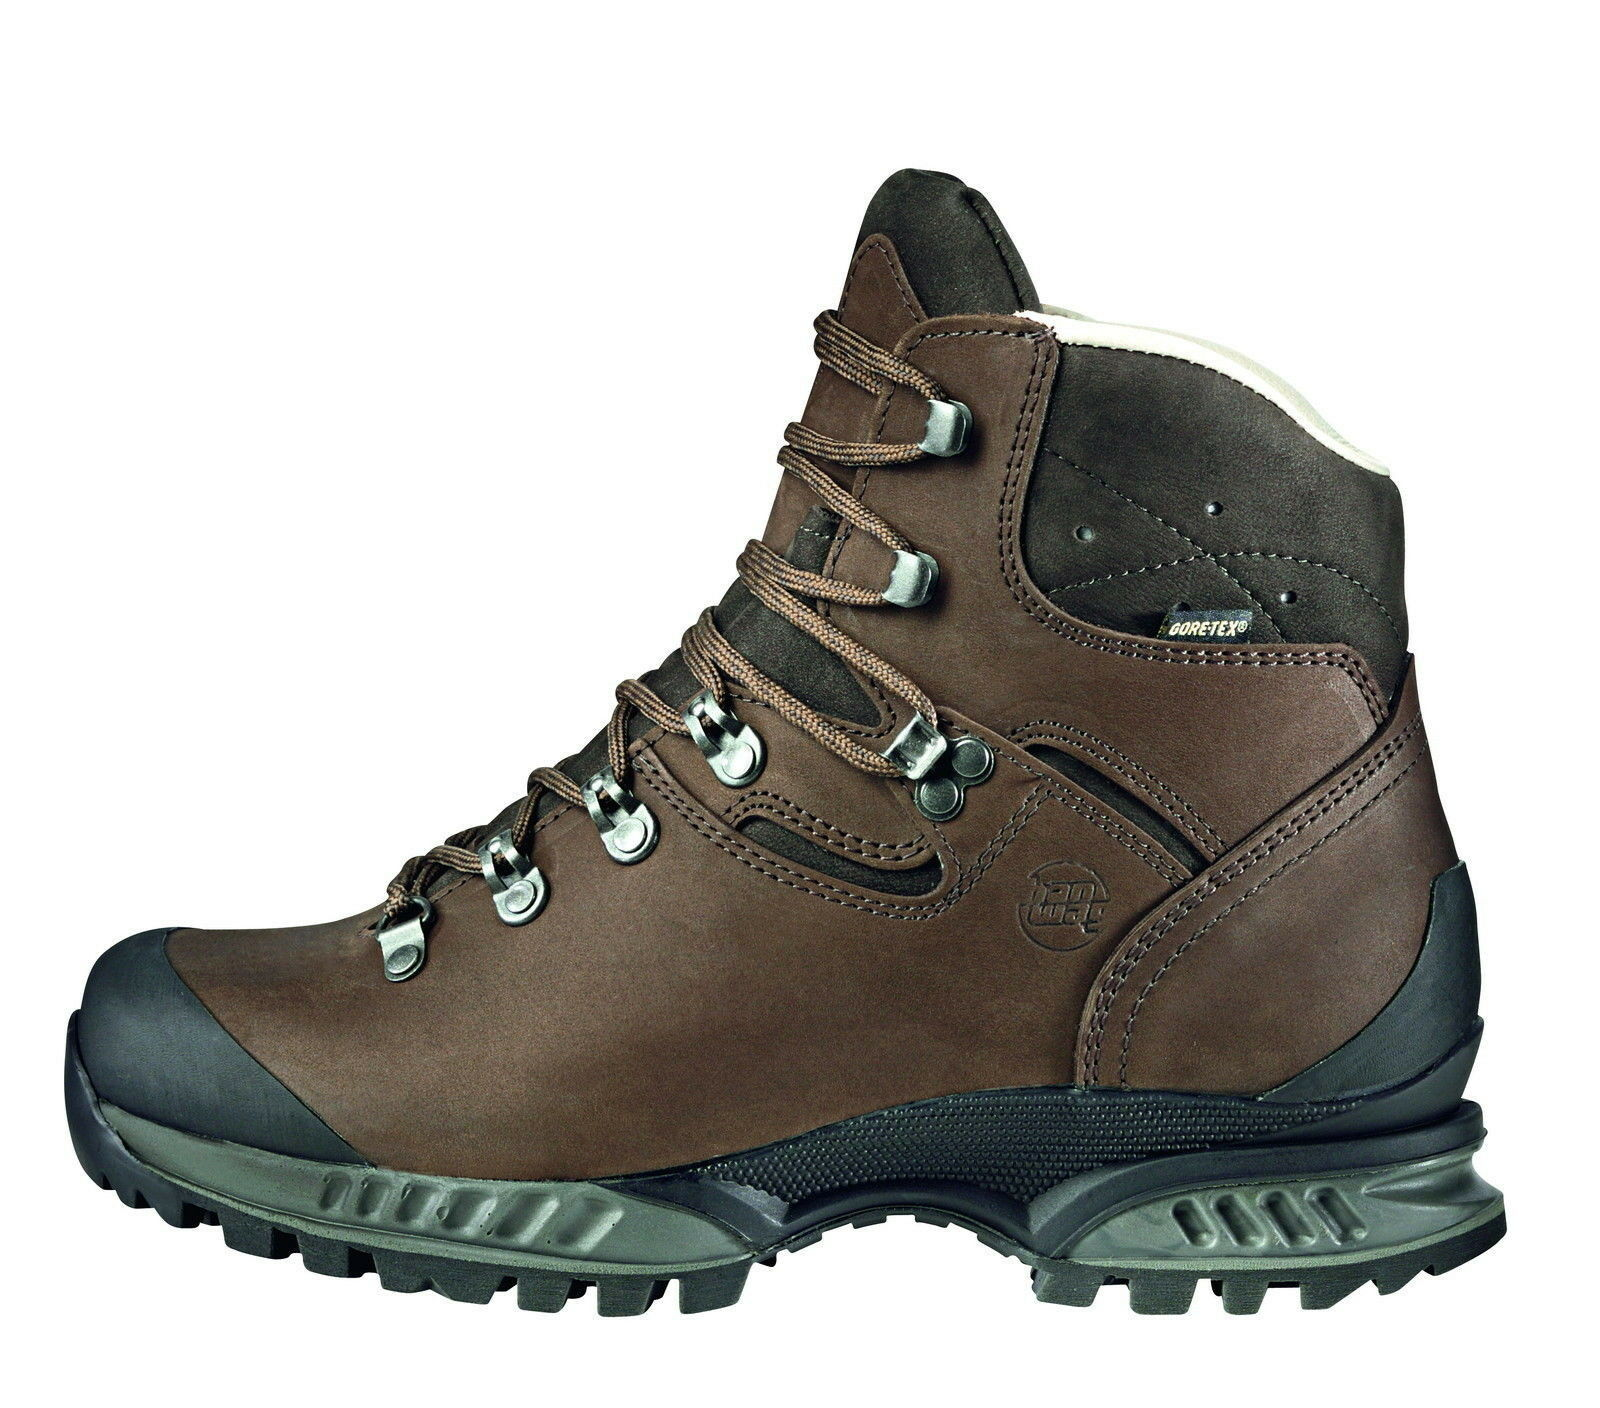 Hanwag Trekking shoes Tatra Wide GTX Size 8 - 42 Earth